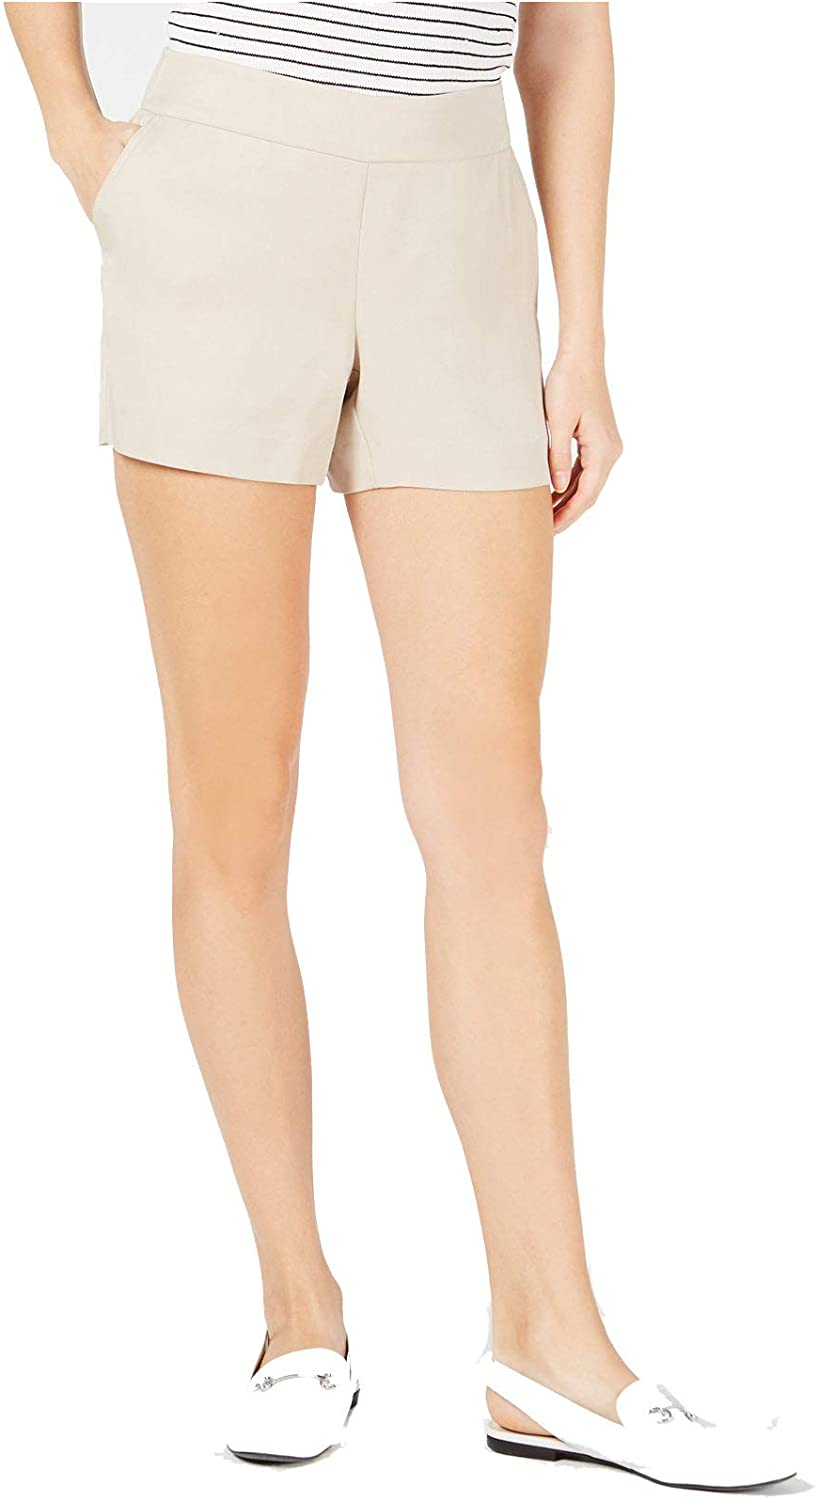 Maison Jules Women's Pull-On Shorts